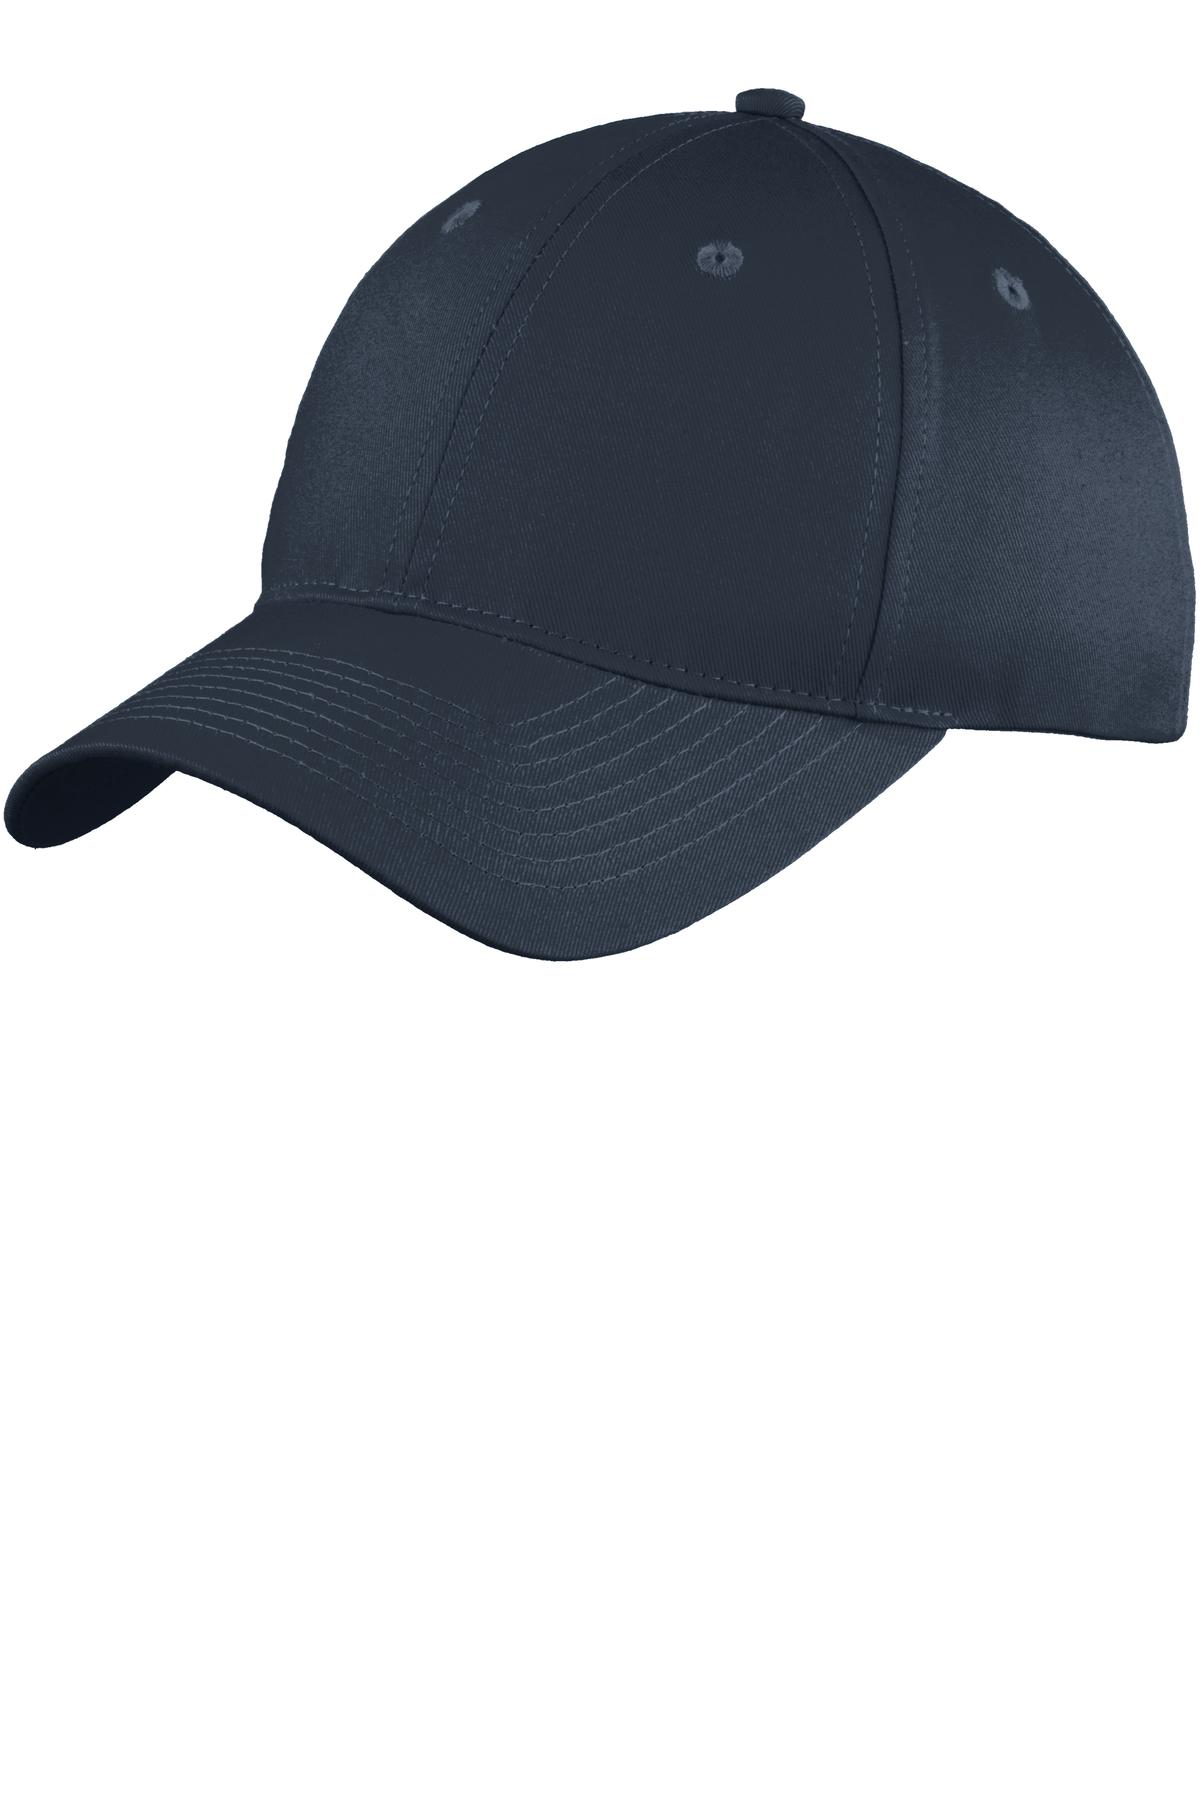 Port & Company ®  Six-Panel Unstructured Twill Cap. C914 - Navy